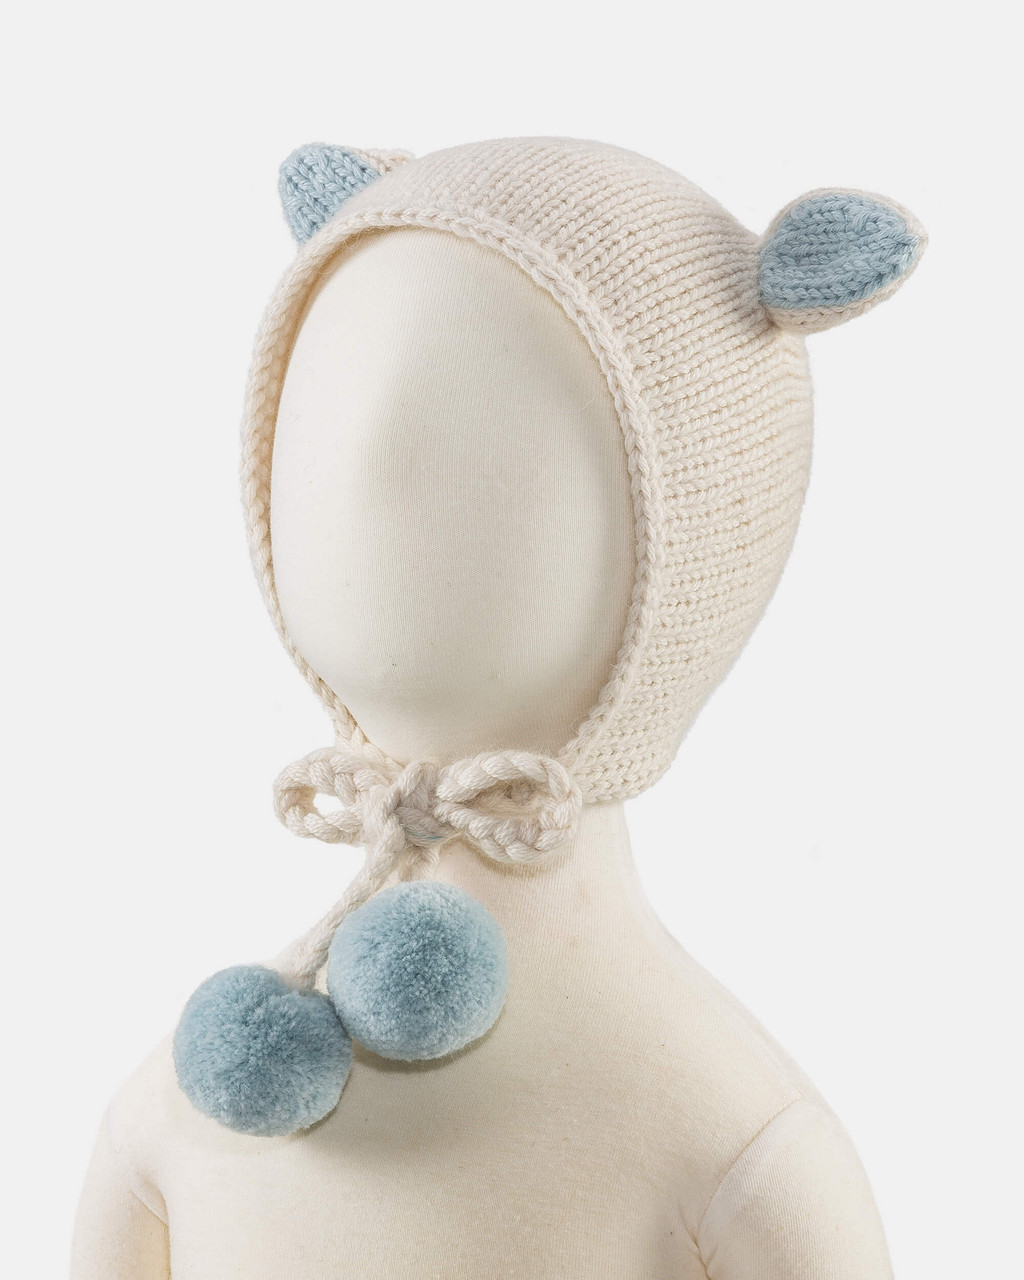 Alicia Adams Alpaca Bunny Hat, alpaca baby clothes, baby alpaca hat, alpaca clothing kids, alpaca winter hats, ivory and light blue alpaca baby hat